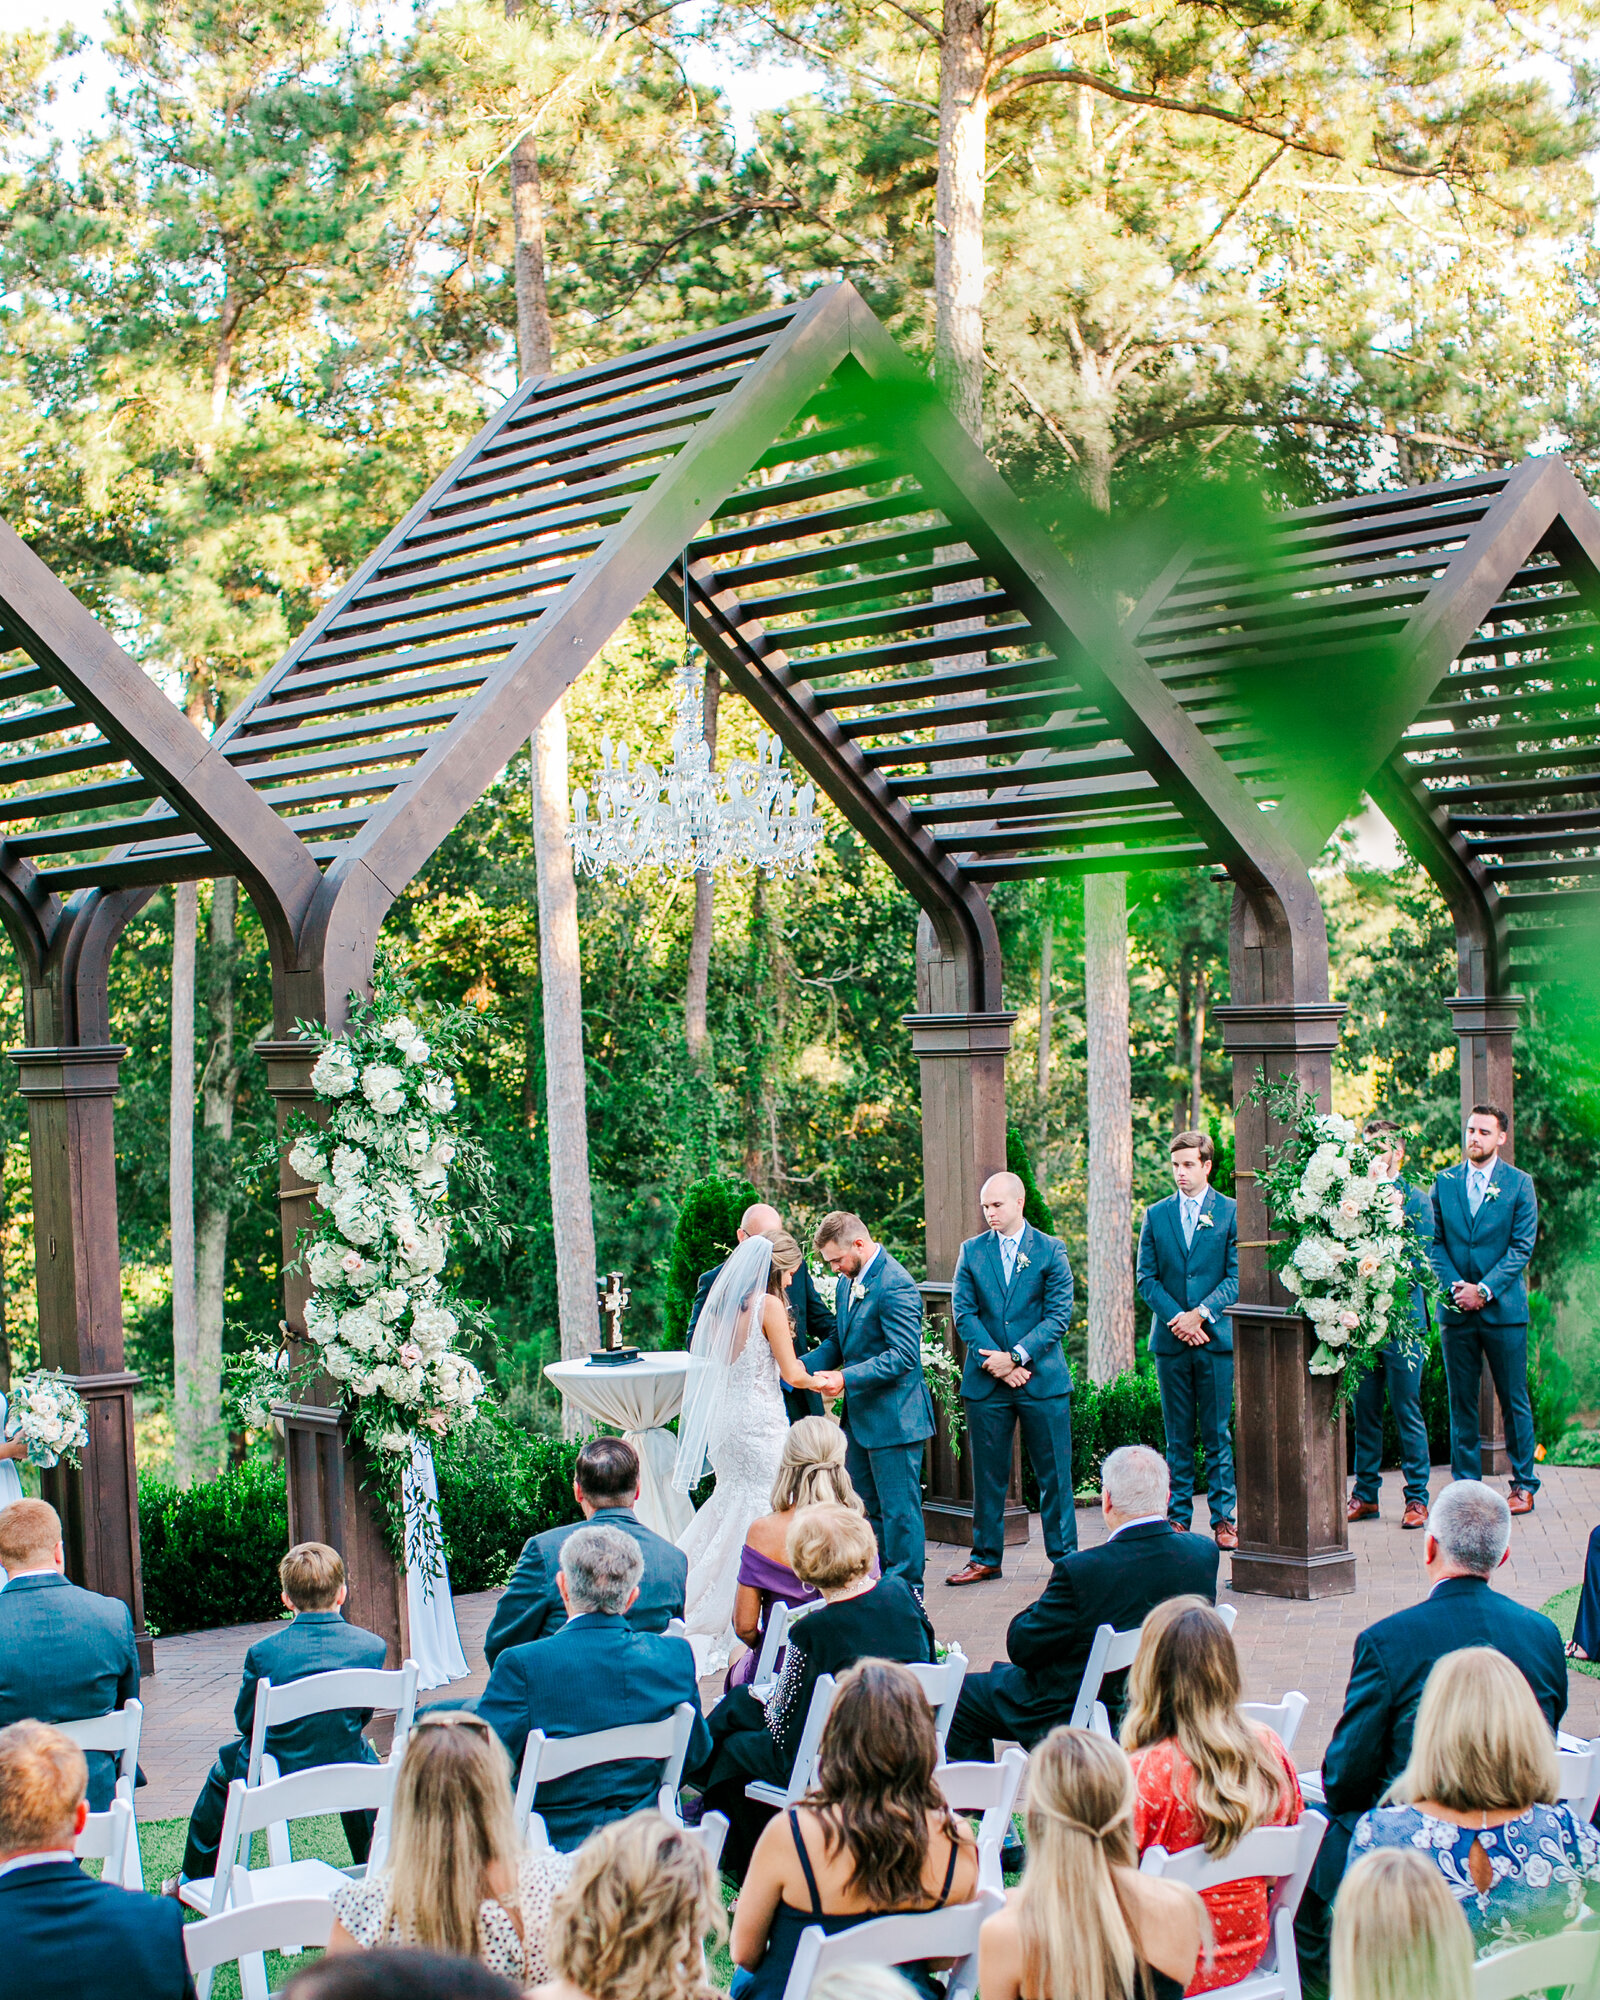 A wedding ceremony at the Highgrove Estate in Fuquay Varina NC